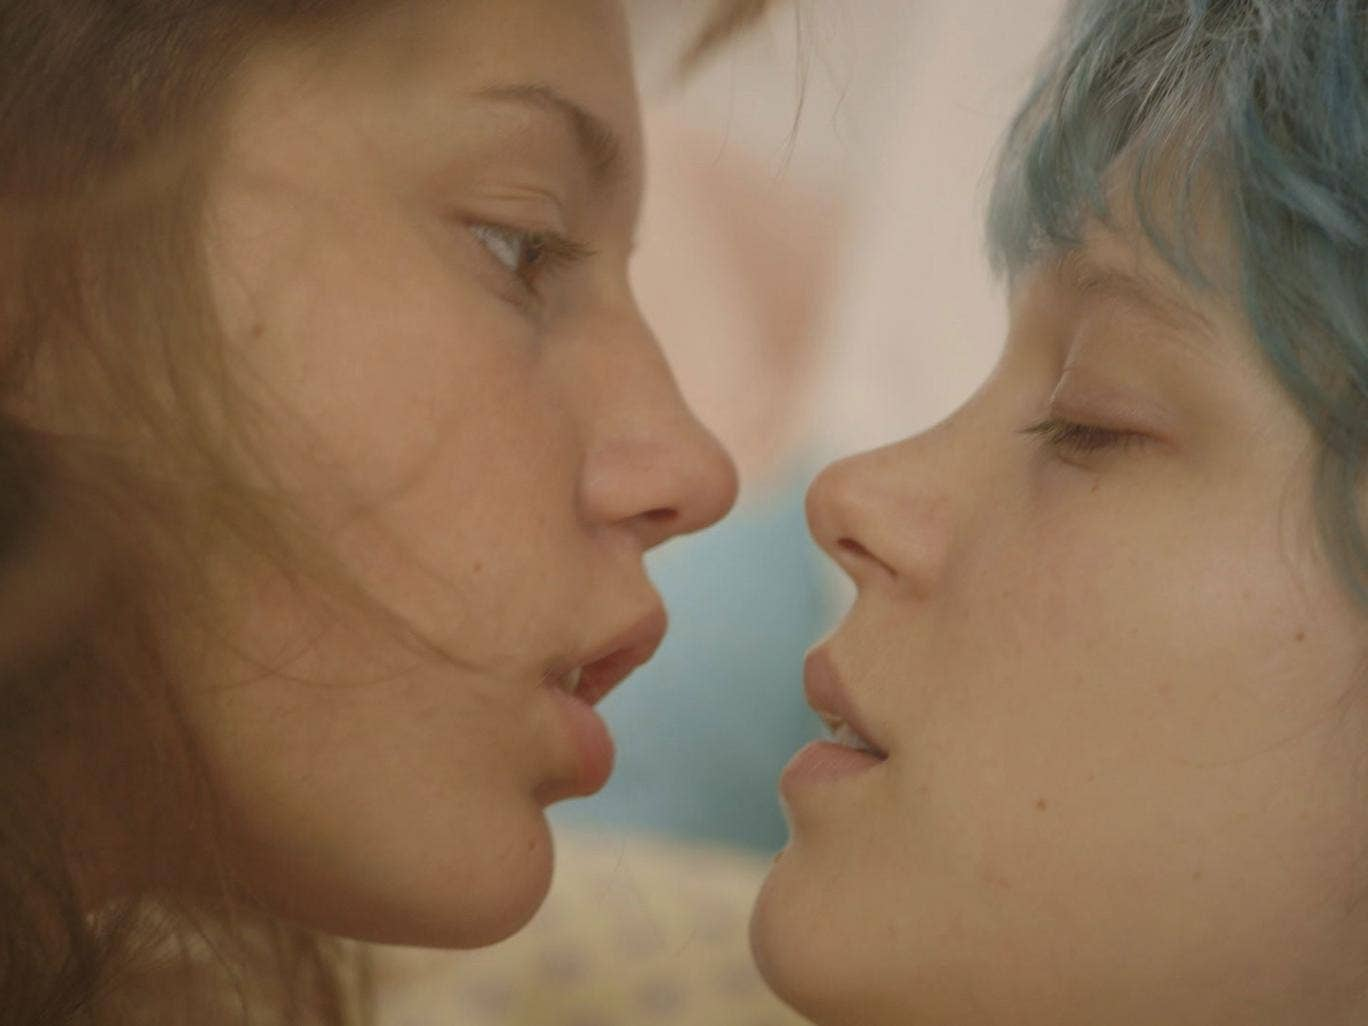 Adèle Exarchopoulos and Léa Seydoux play teeneage lovers in the French erotic drama 'Blue Is The Warmest Colour' - The survey found four times as many women admitting to same-sex experiences than 20 years ago